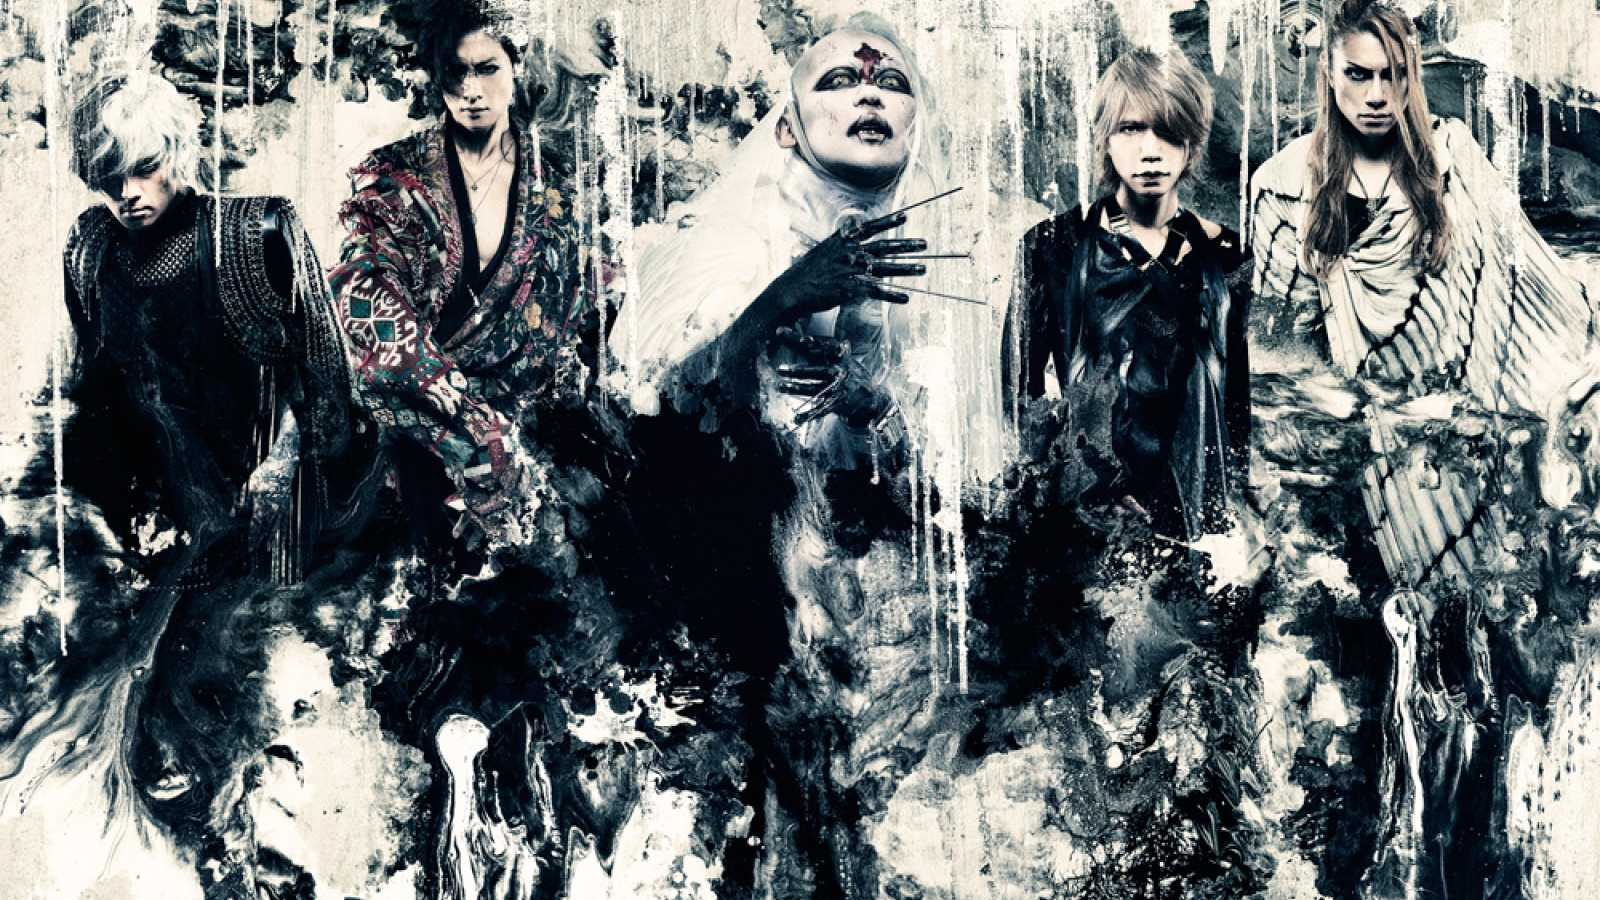 DIR EN GREY - The World of Mercy